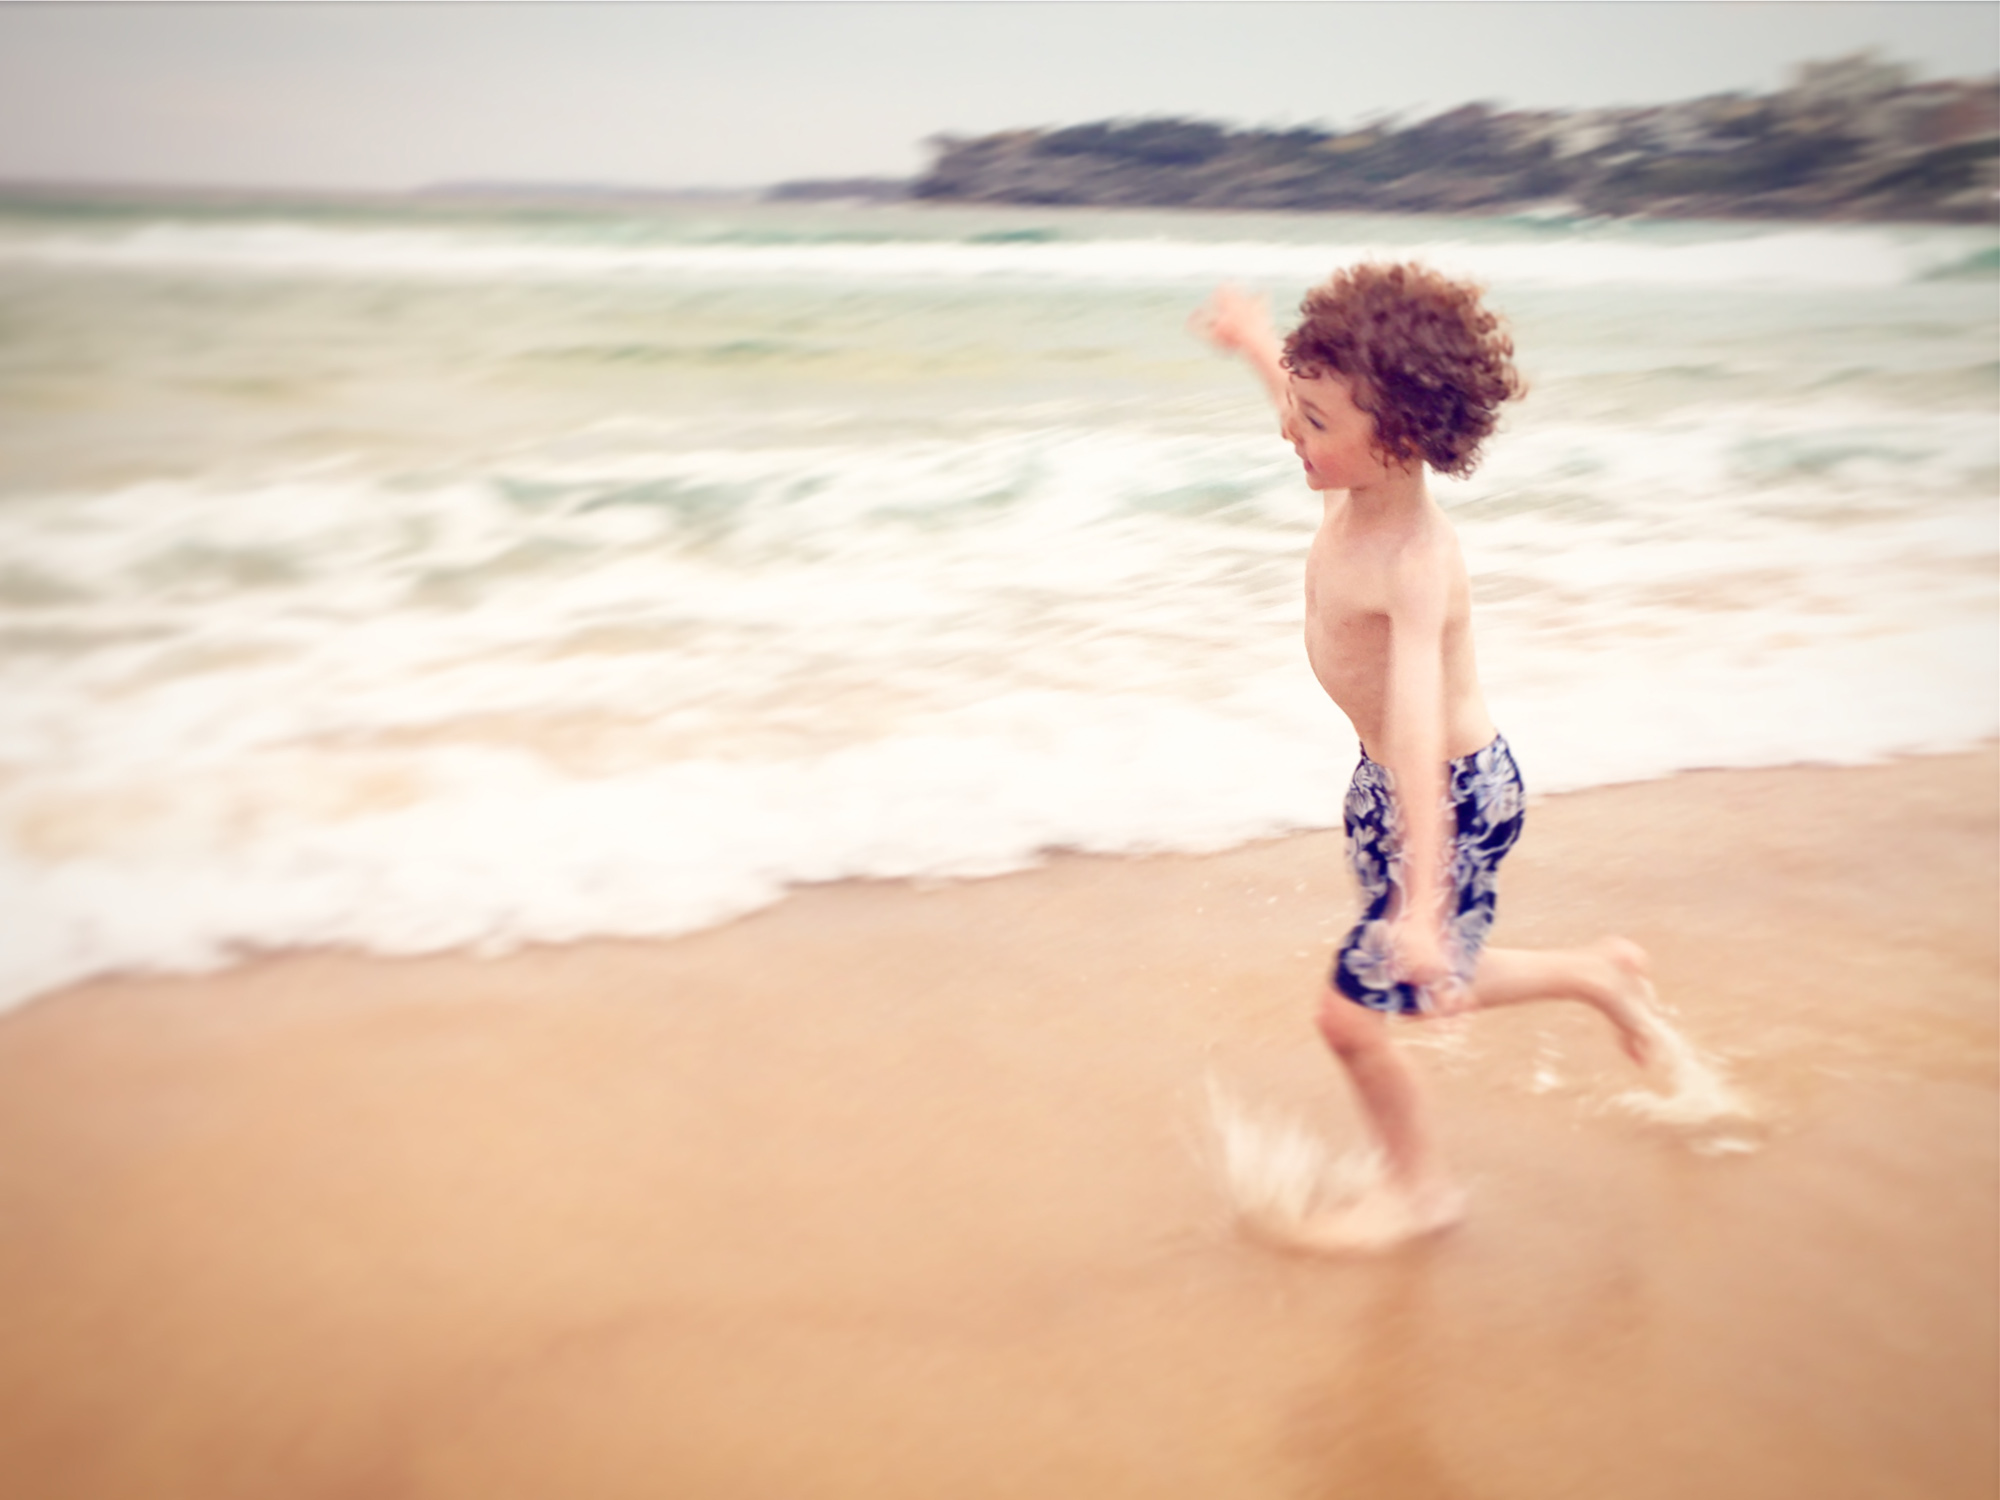 Can't we rather spend the time running free on the beach.